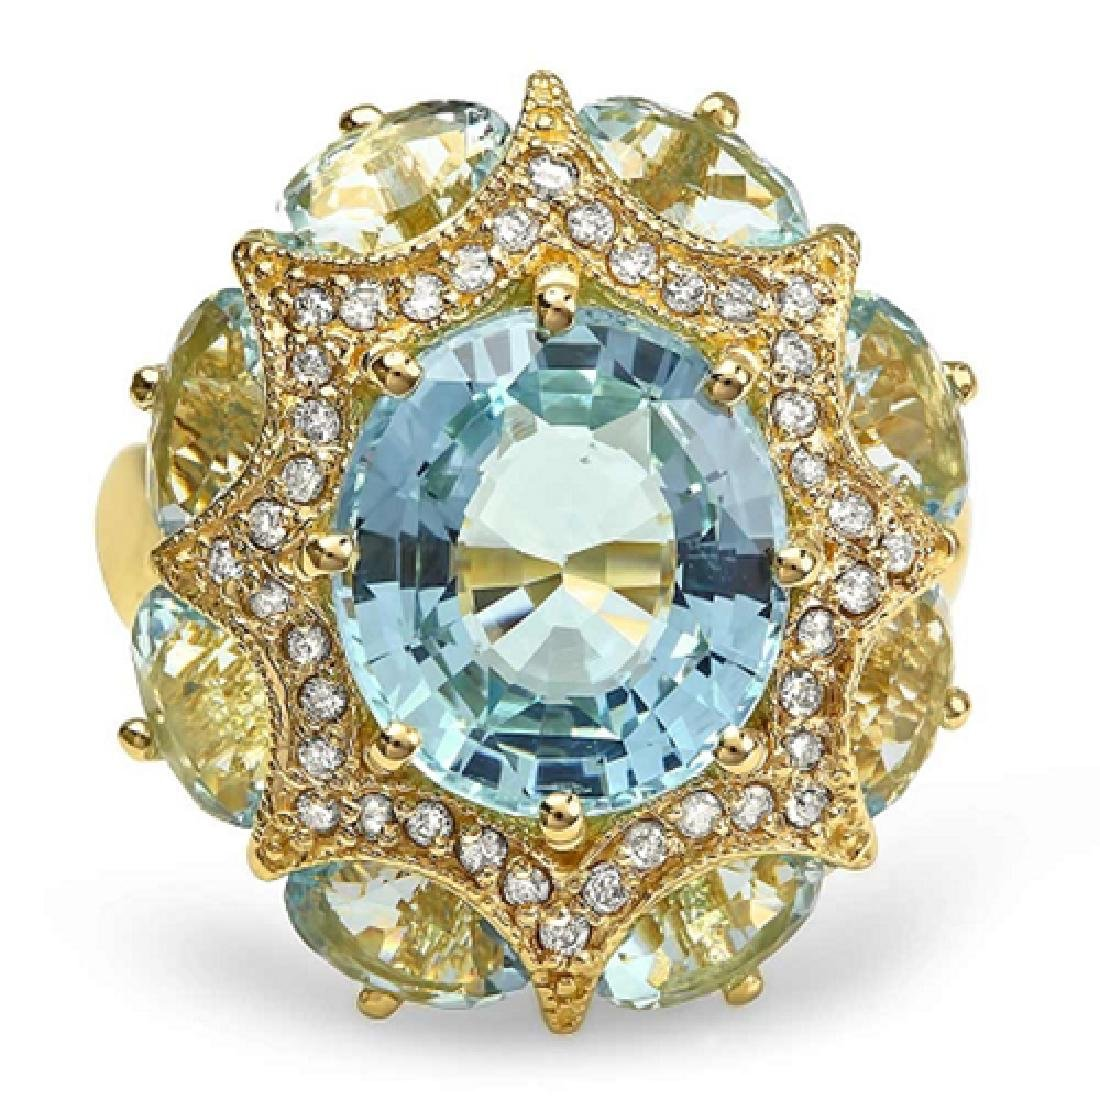 8.00 Carat Natural Aquamarine 18K Solid Yellow Gold